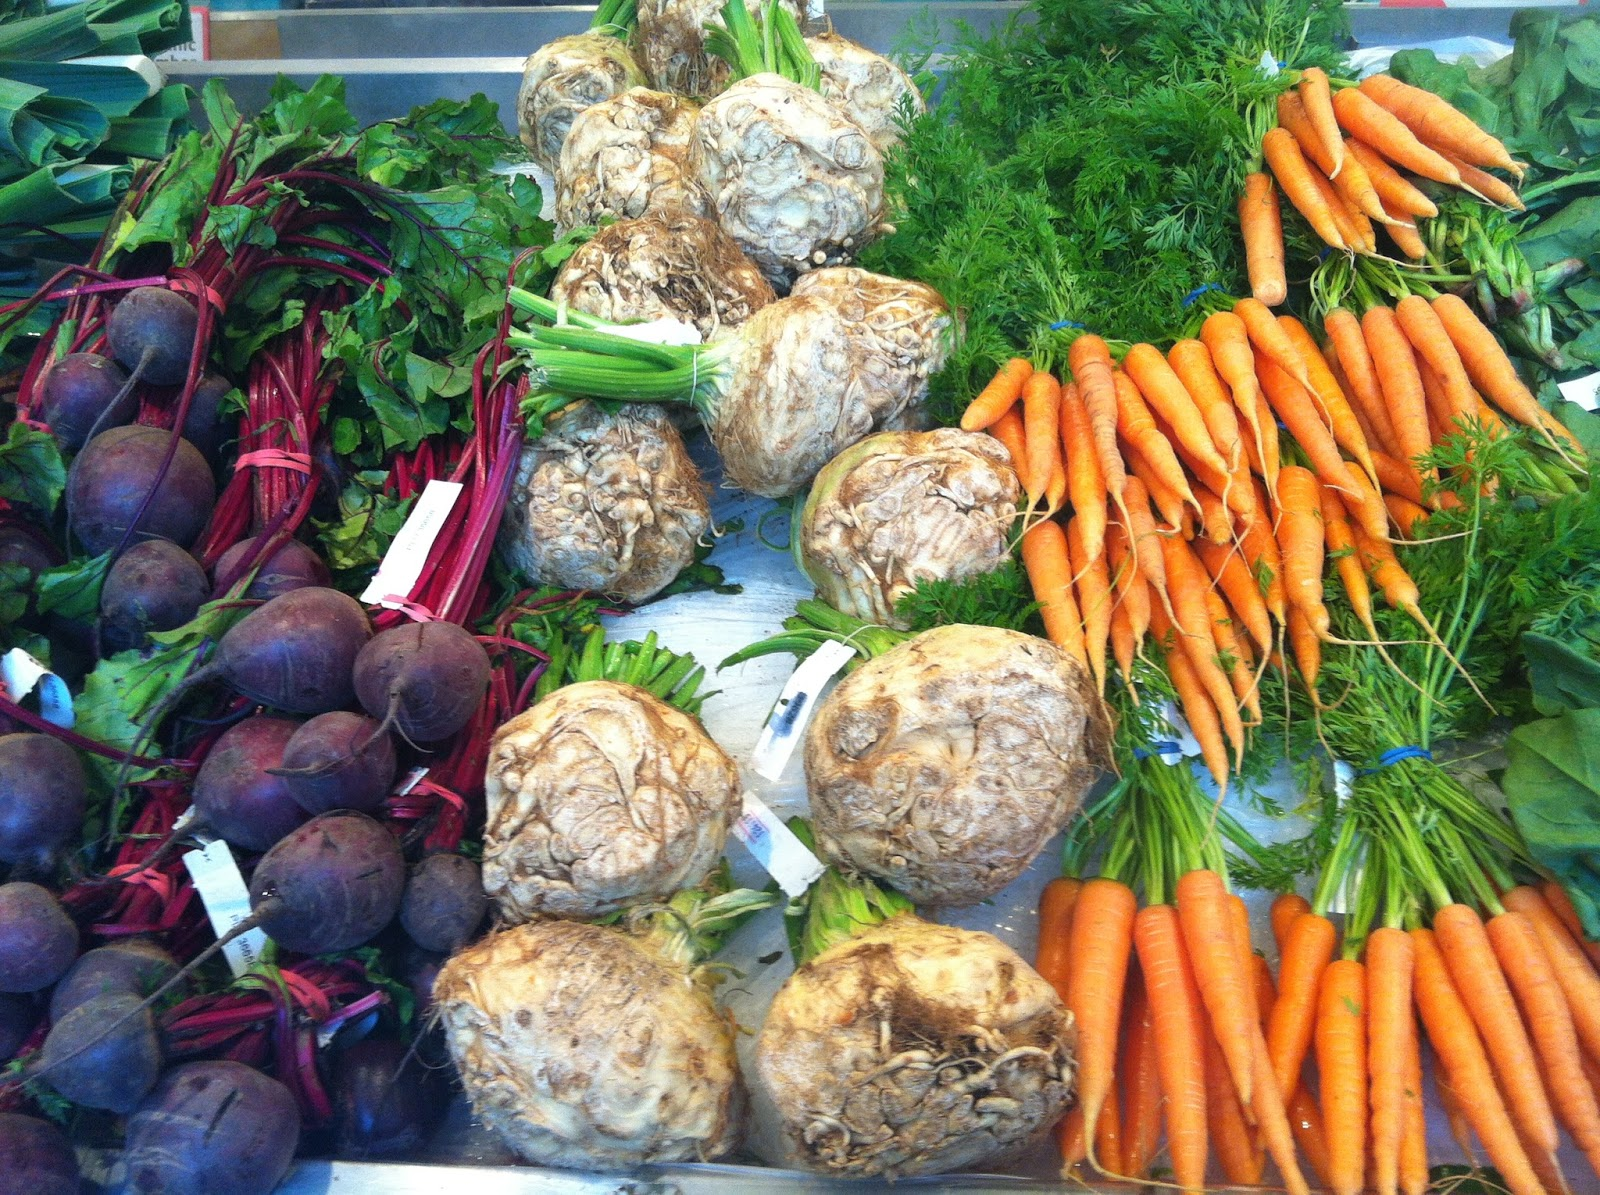 Beetroot, celeriac and carrots are legal on the SCD